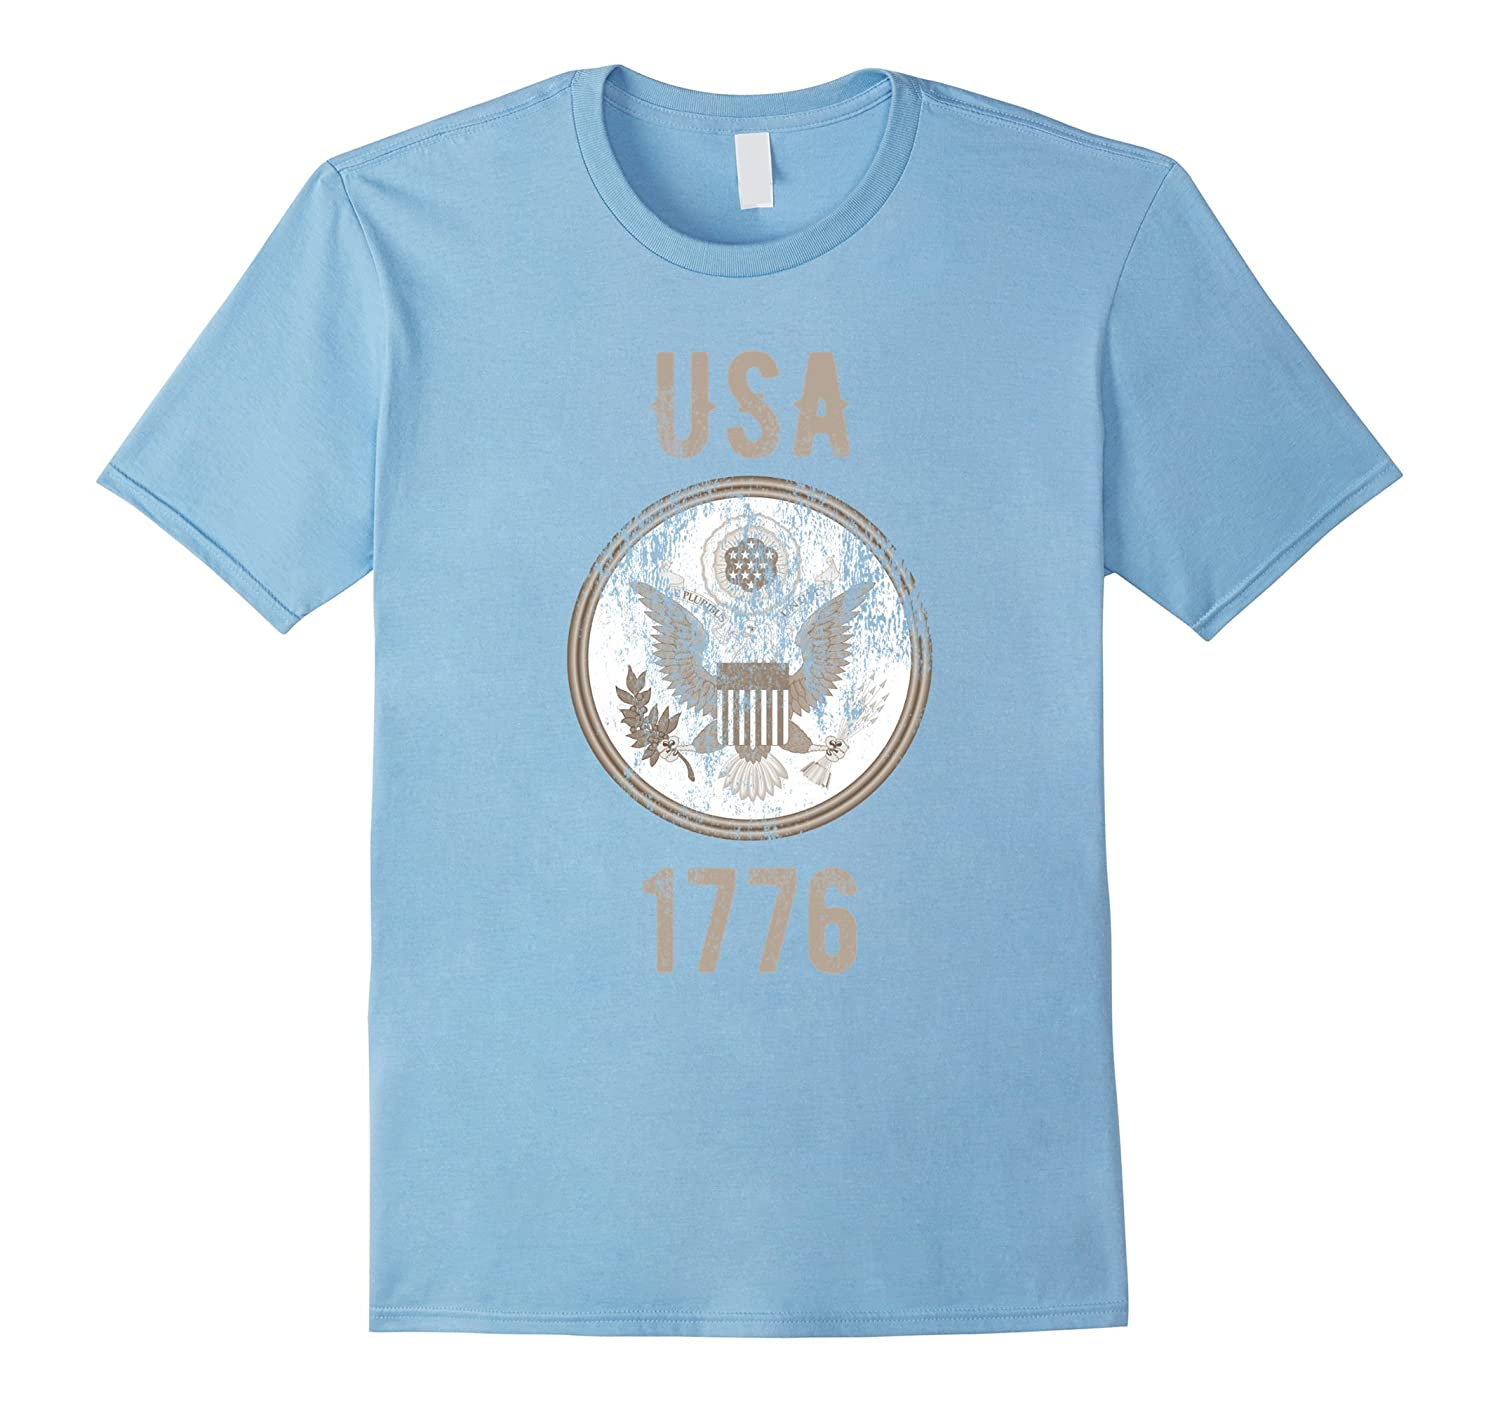 USA 1776 - Great Seal of the United States of America-Vaci